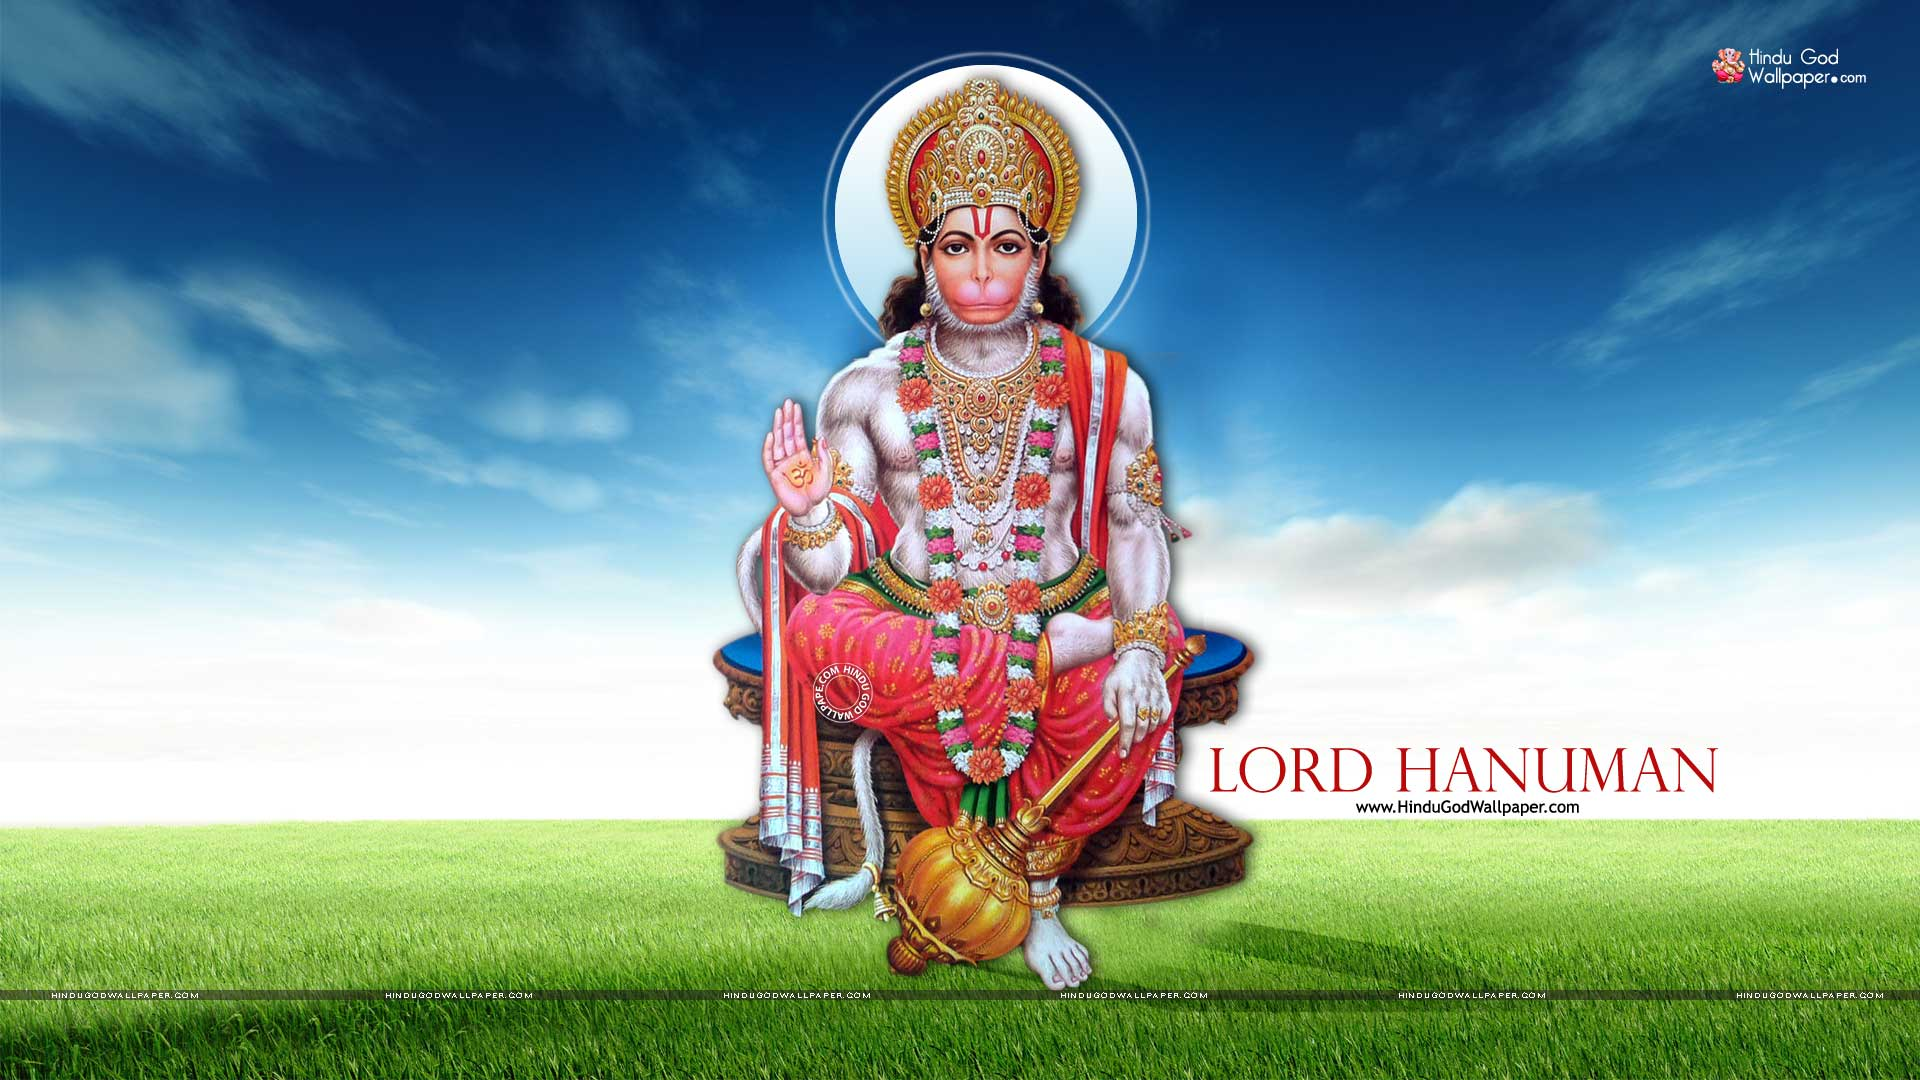 1080p Lord Hanuman Hd Wallpaper 1920x1080 Full Size Download